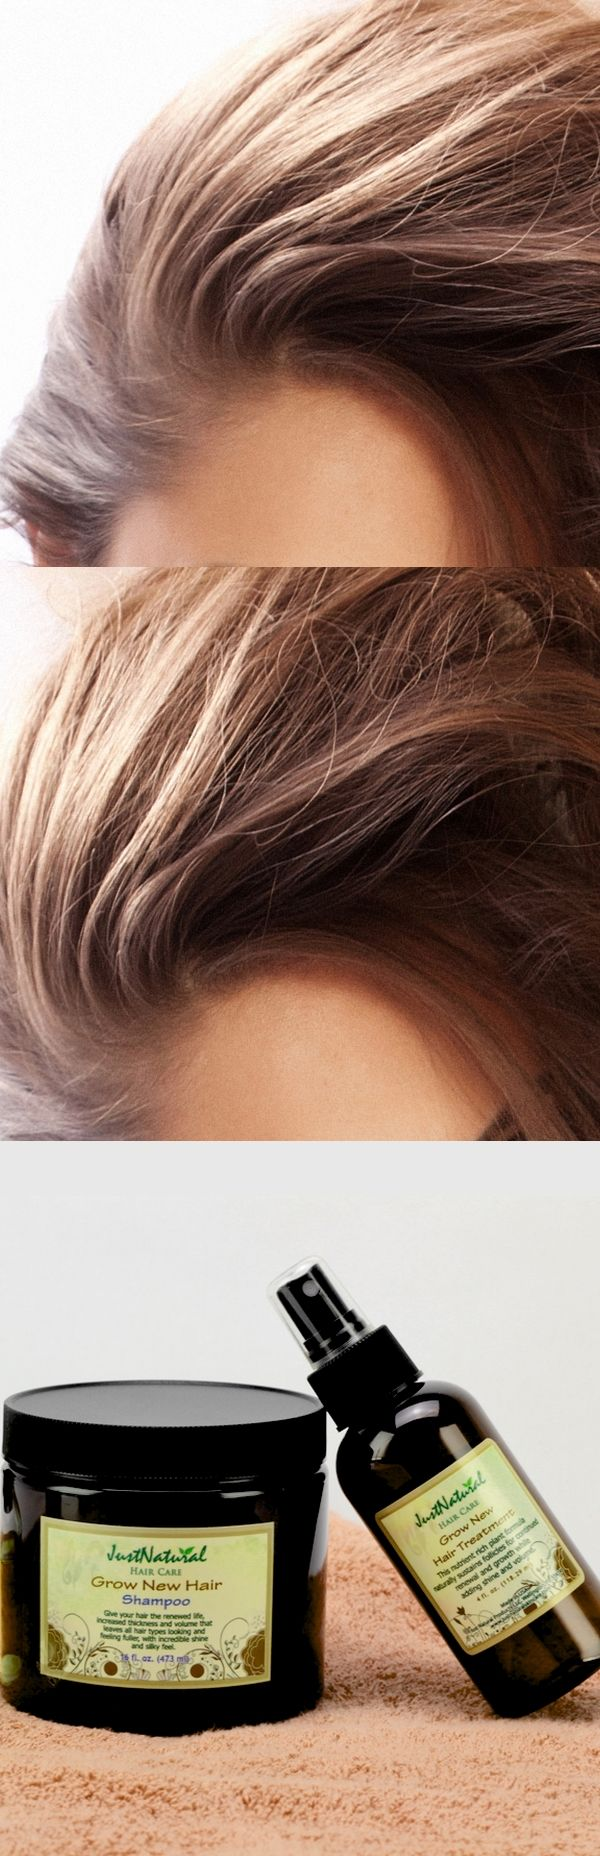 best just natural hair u hair products images on pinterest